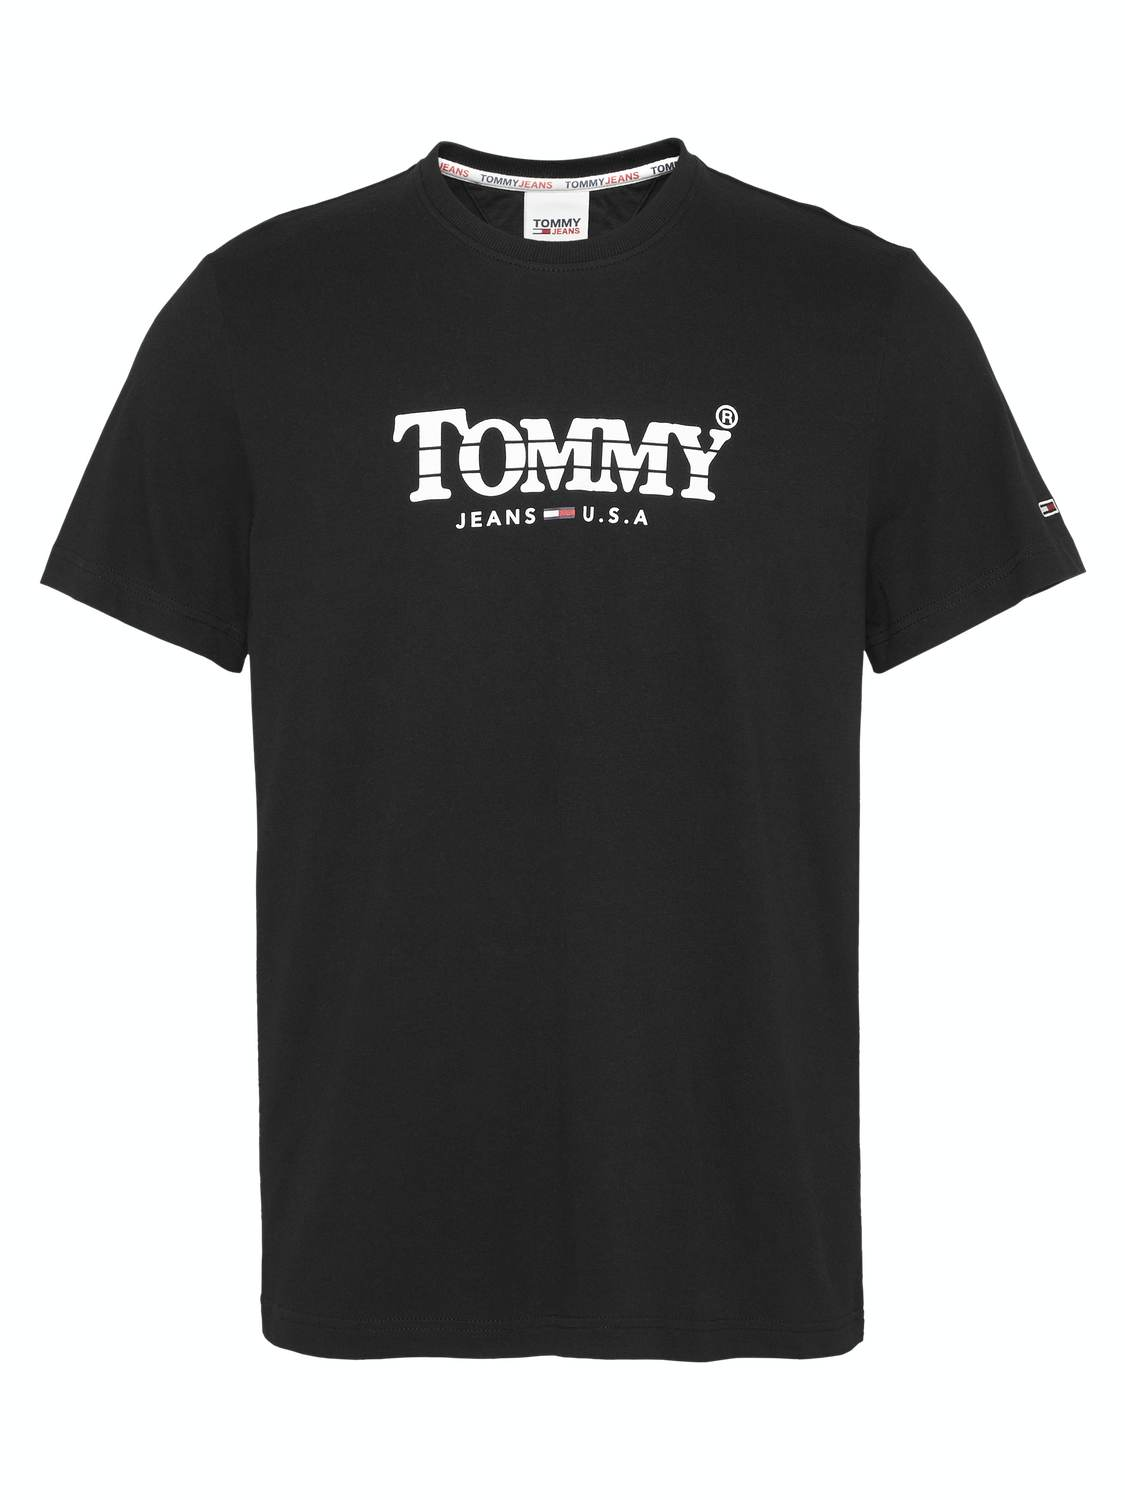 TJM GRADIENT T-SHIRT - BLACK | GATE 36 Hobro